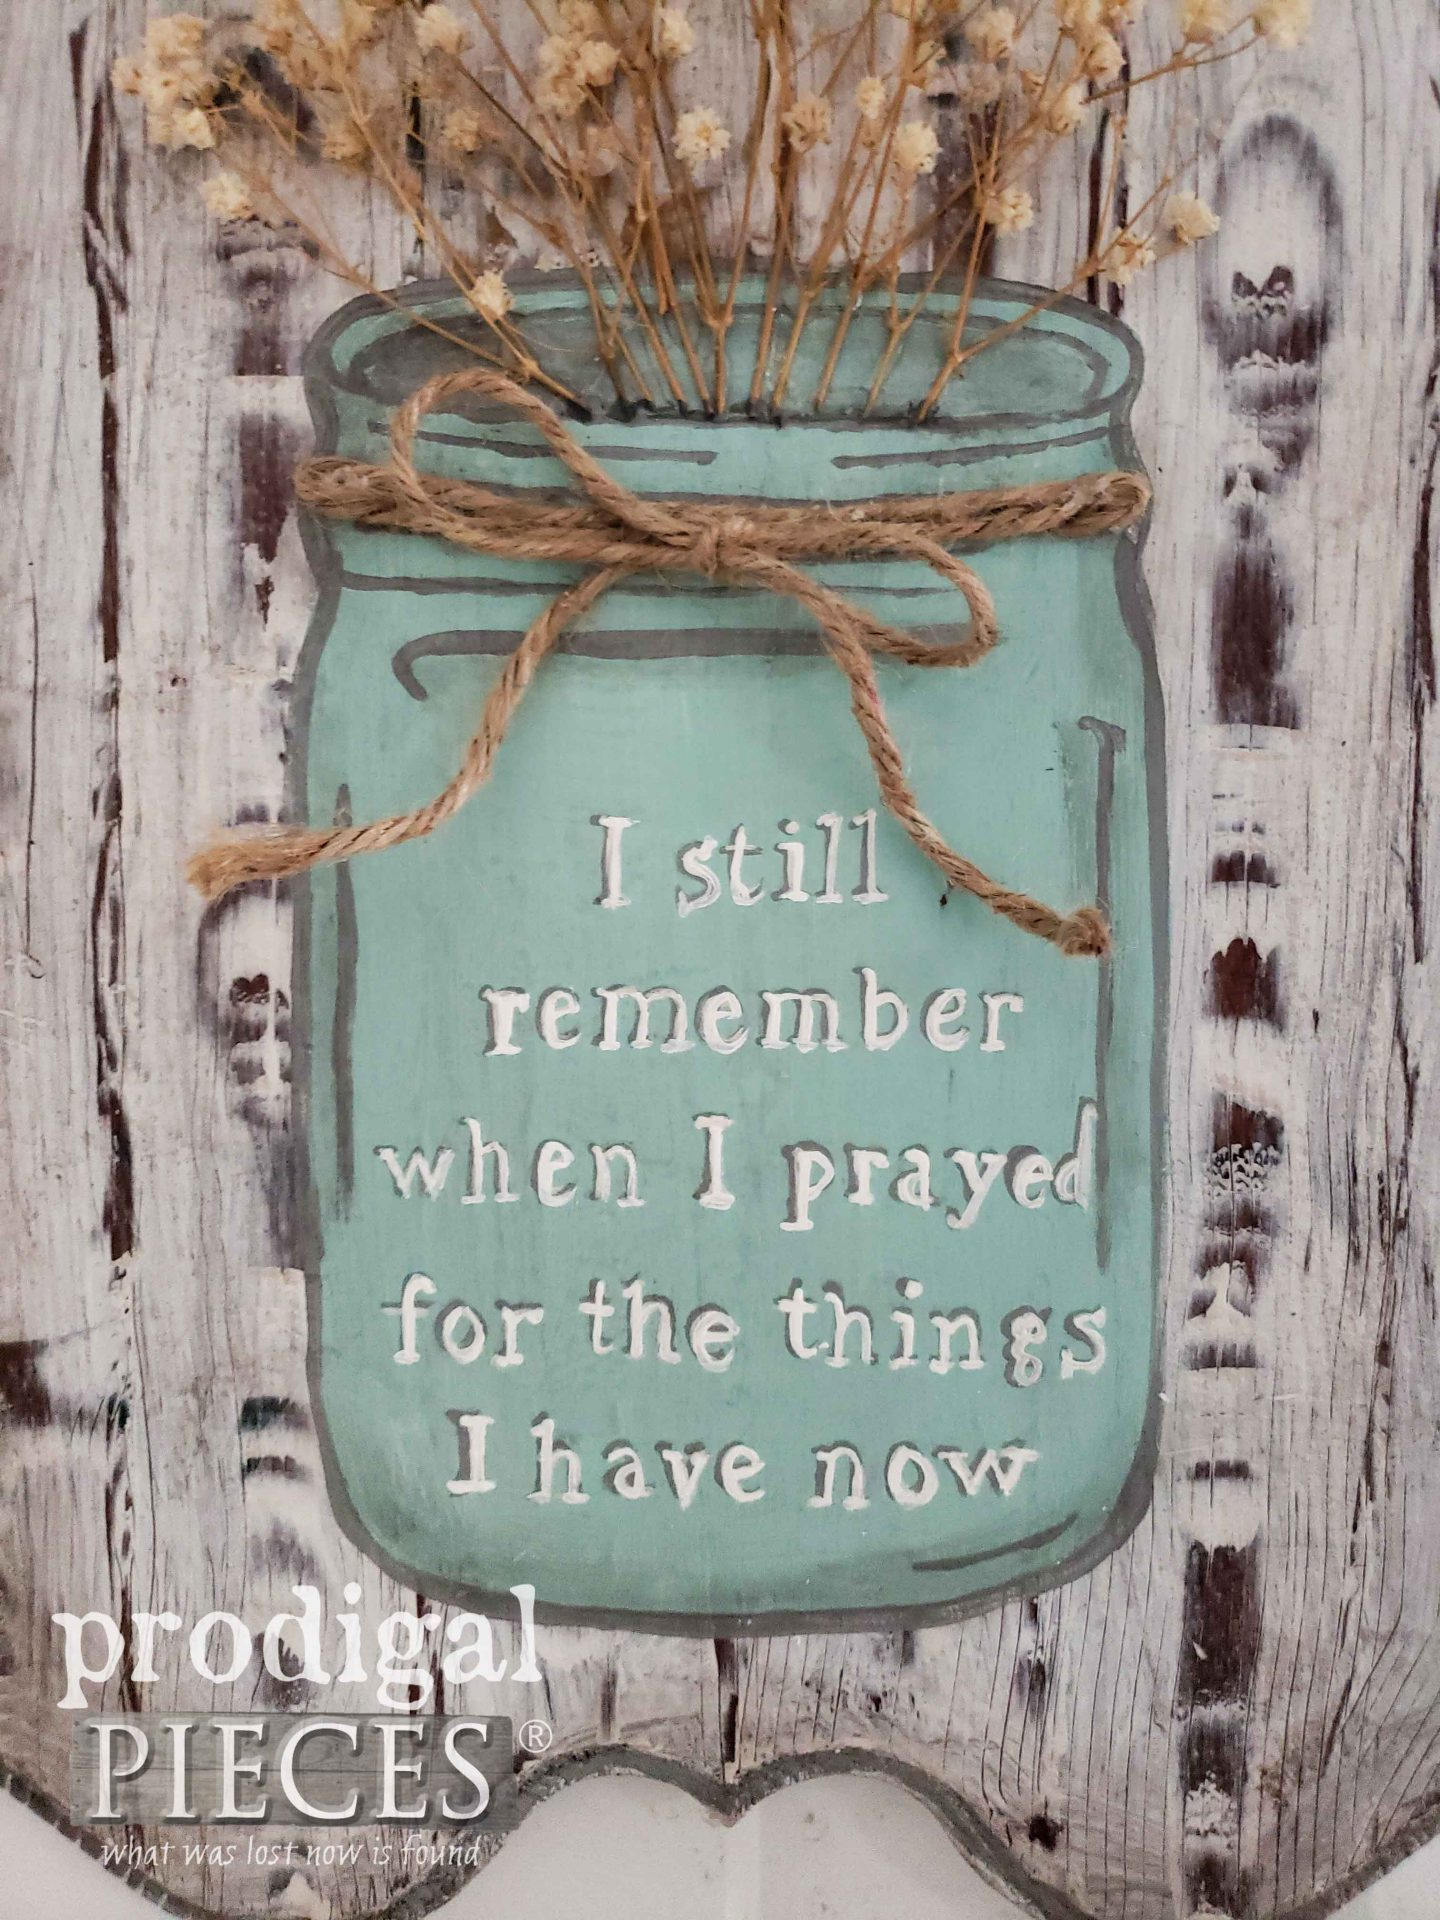 Ball Jar Blessings Sign Handmade by Larissa of Prodigal Pieces | prodigalpieces.com #prodigalpieces #home #farmhouse #diy #homedecor